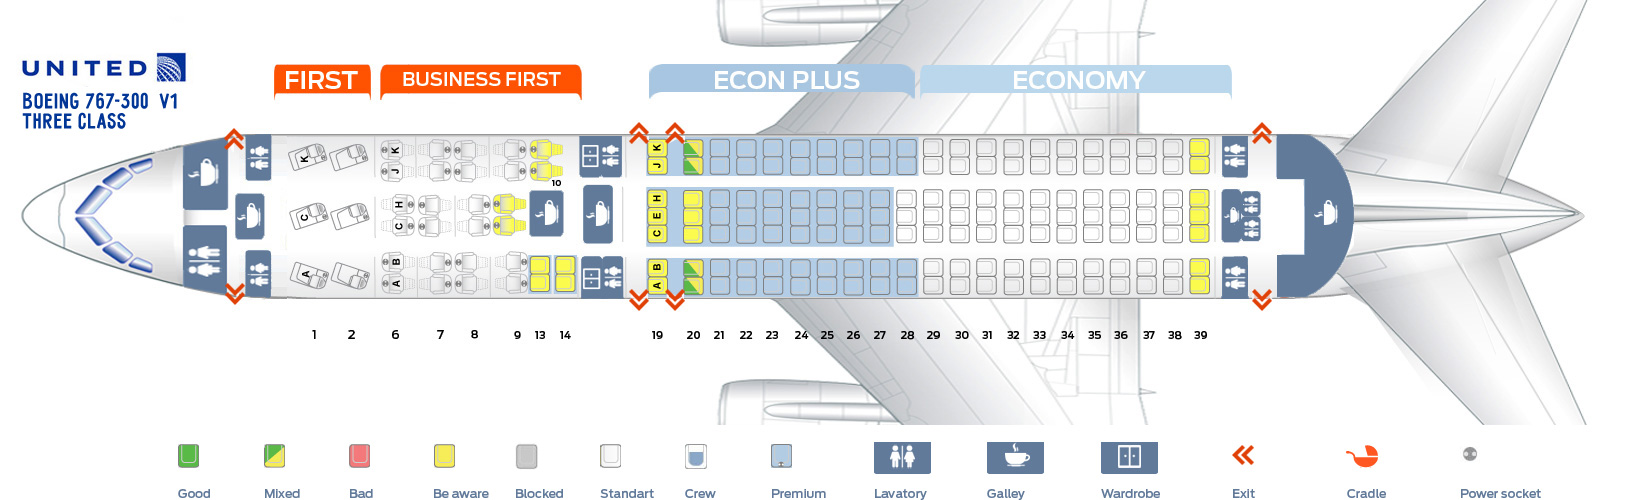 Seat_map_United_Airlines_Boeing_767_300_v1